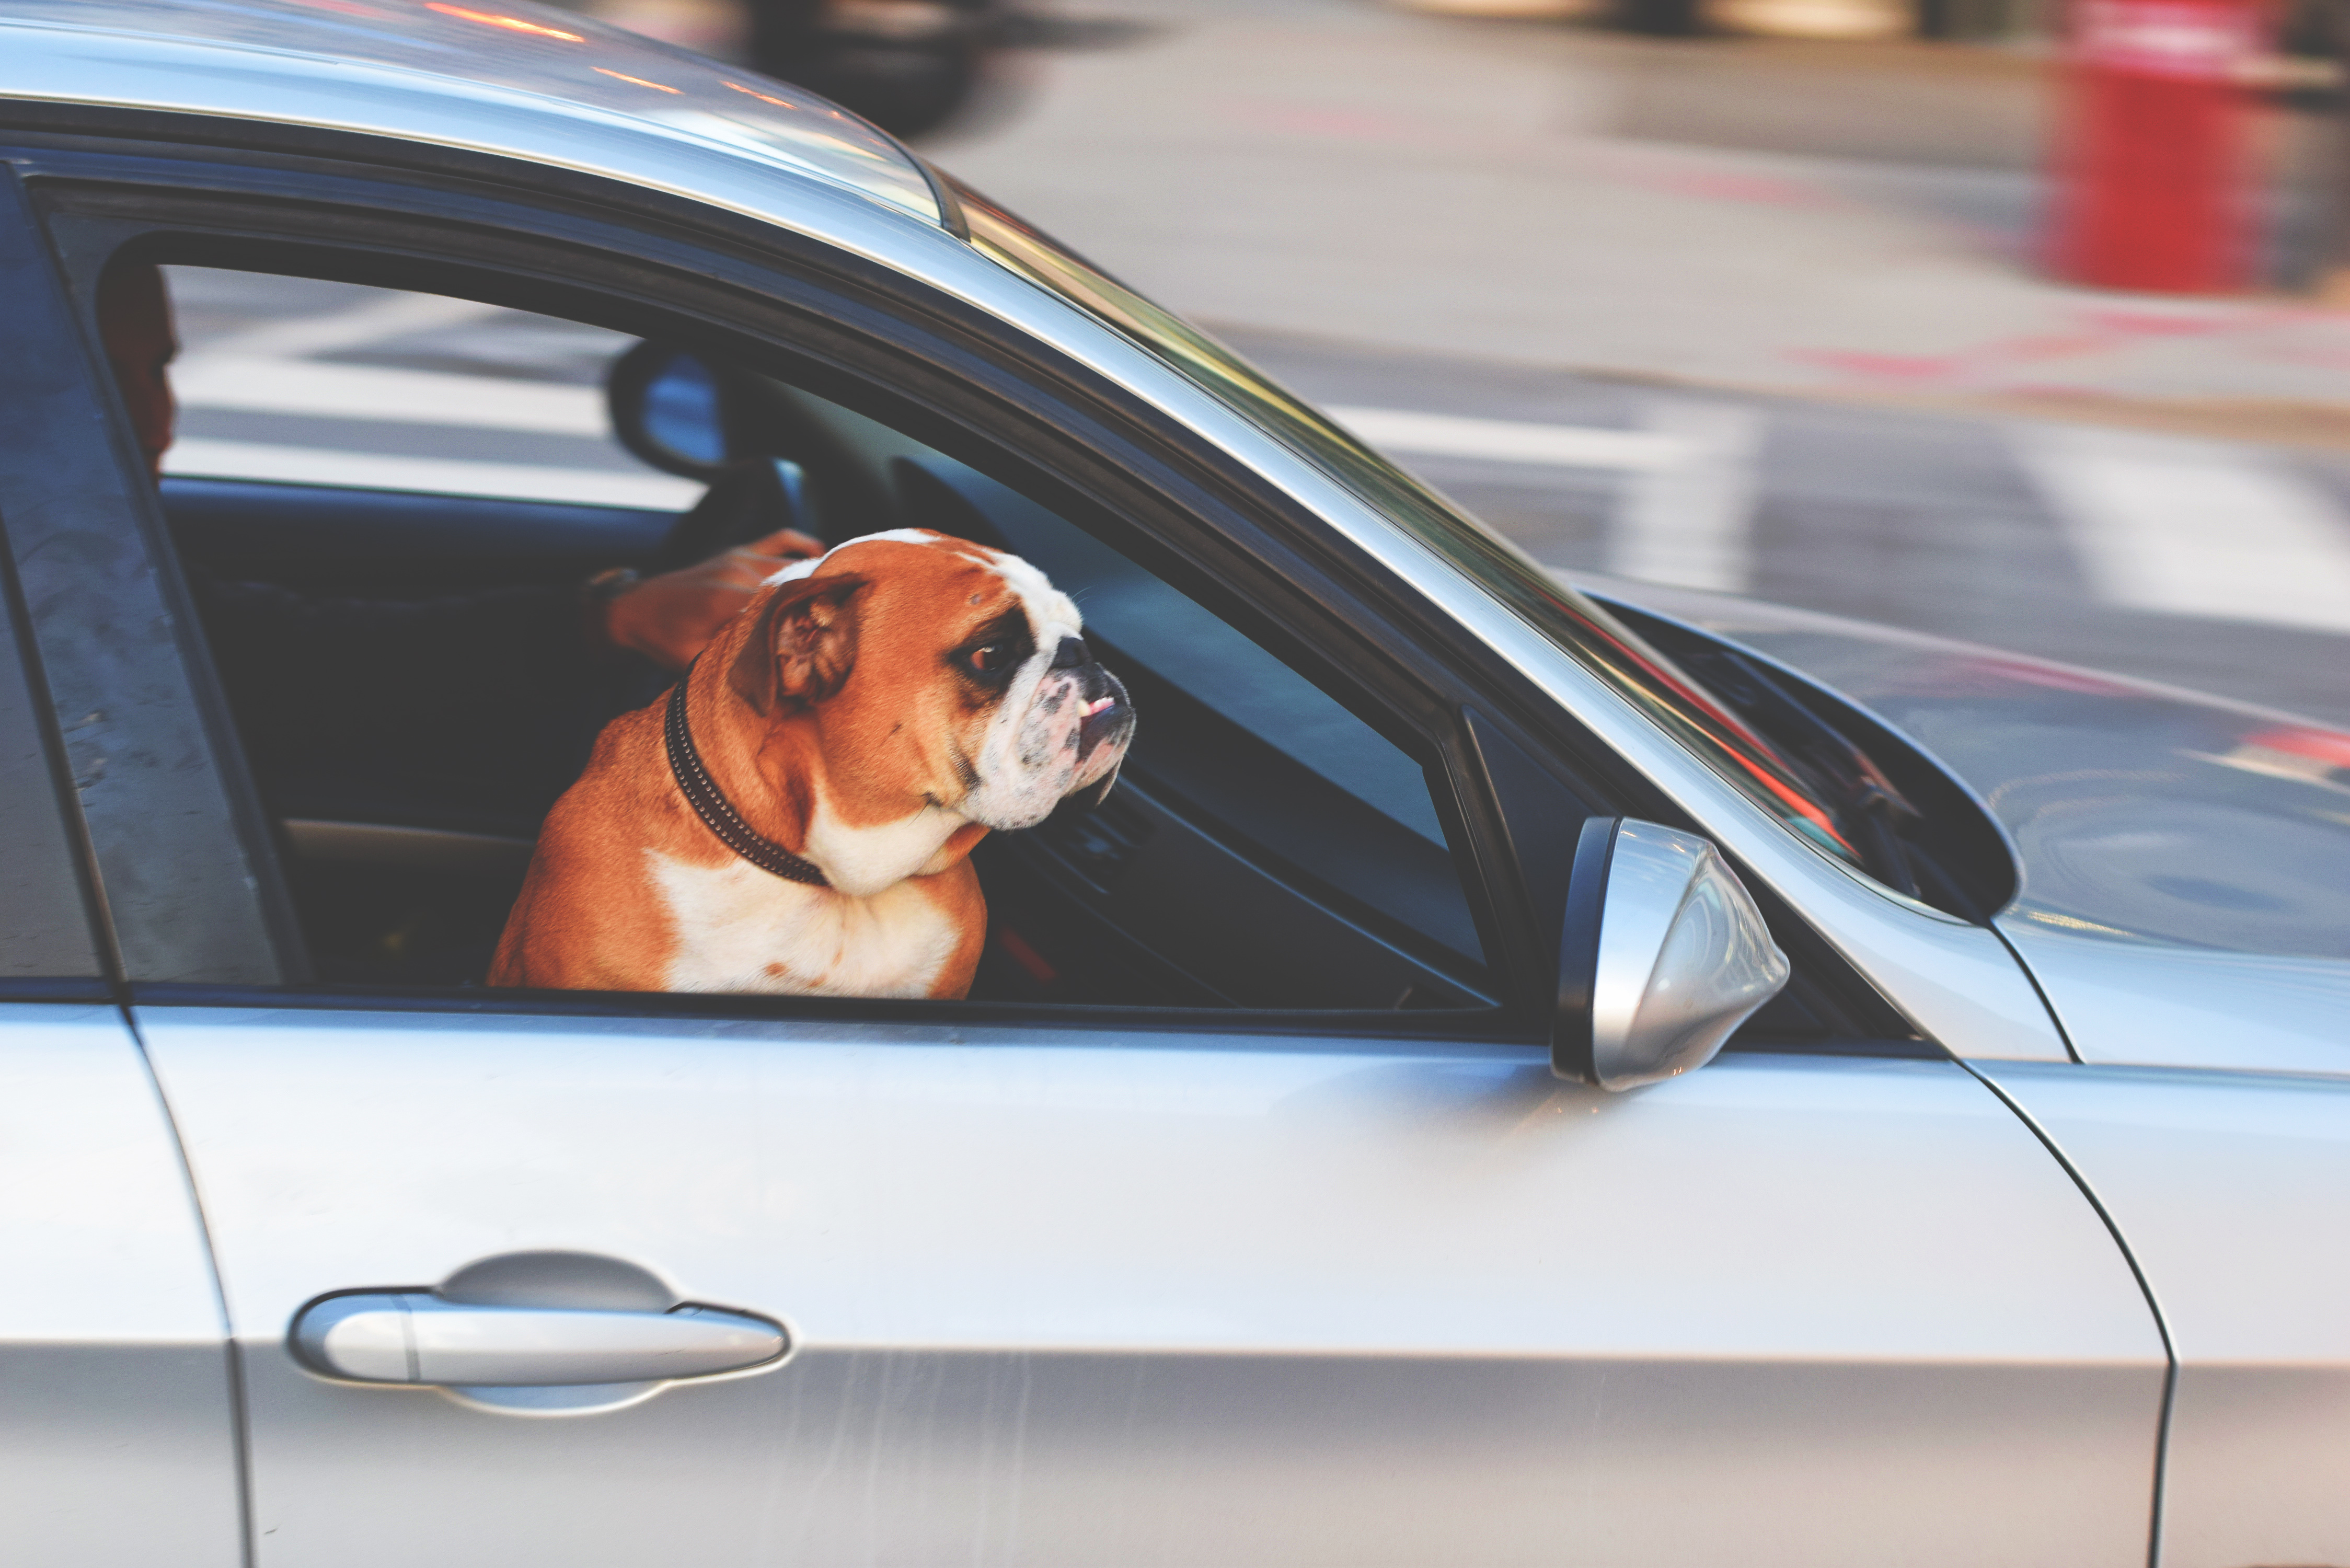 DOG IN CAR 1pexels-photo-236452